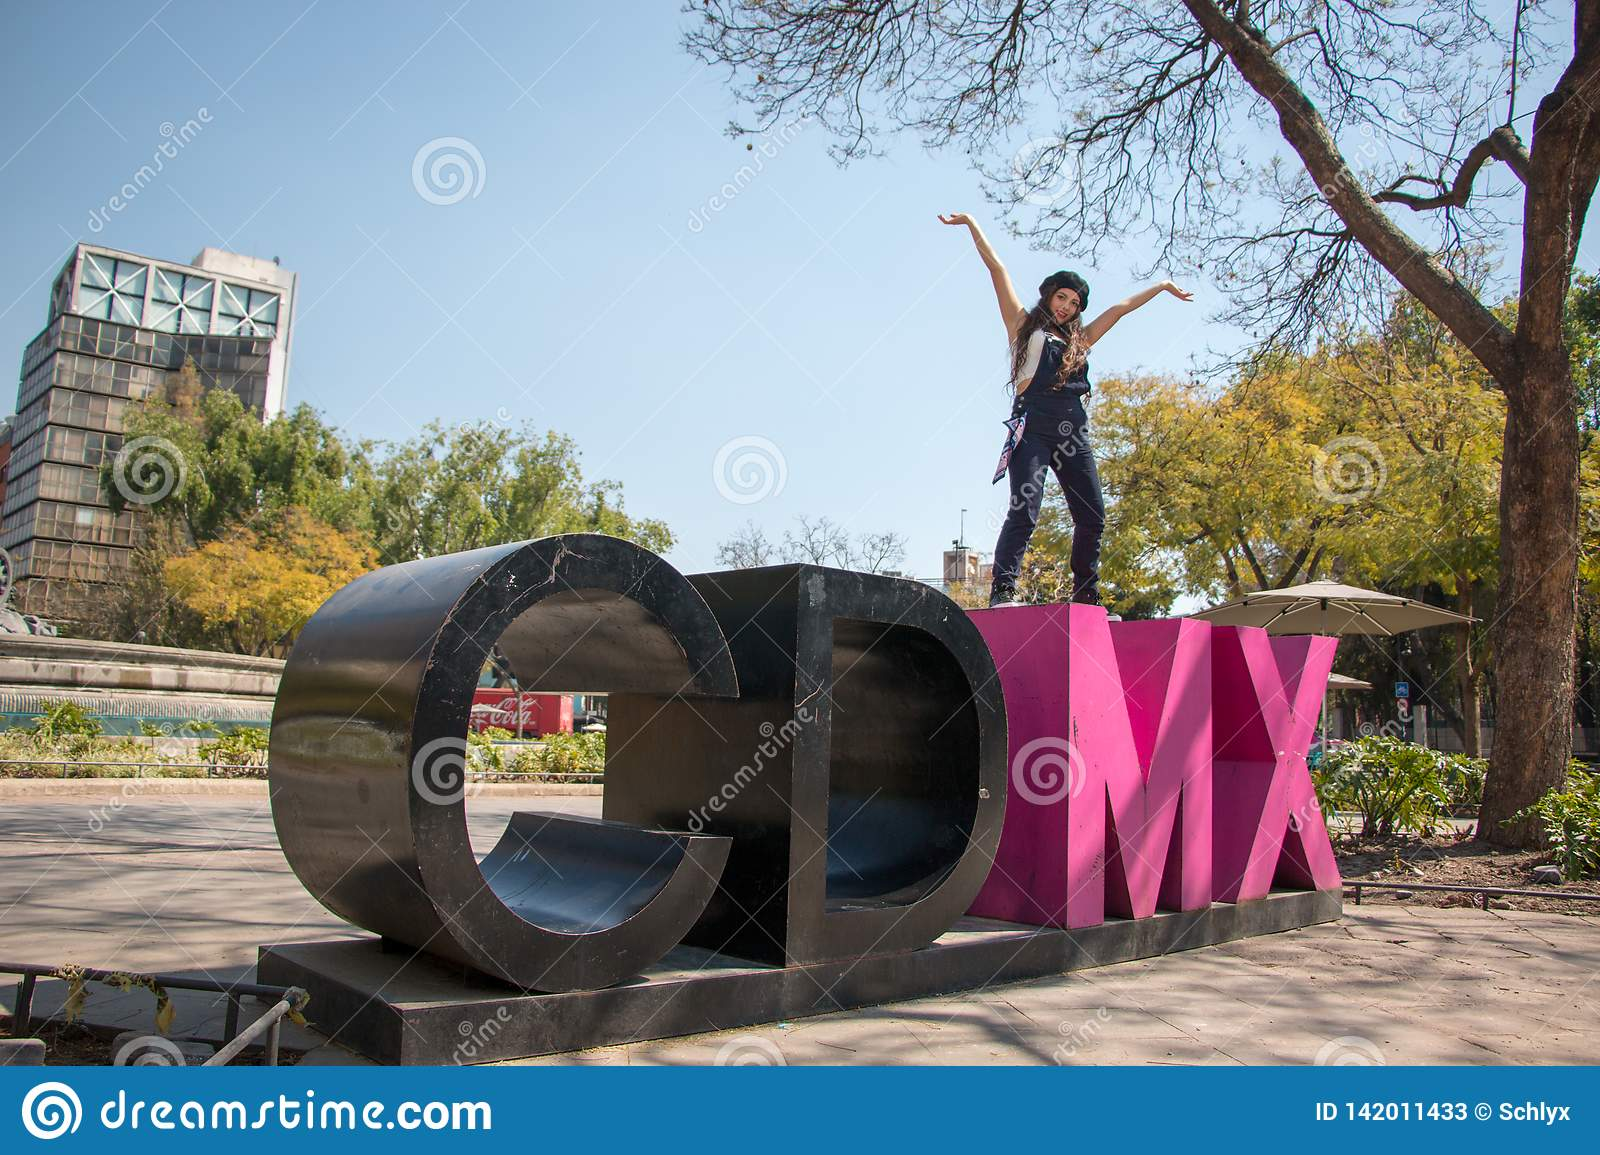 Young lady standing on the CDMX sculpture in la Condesa